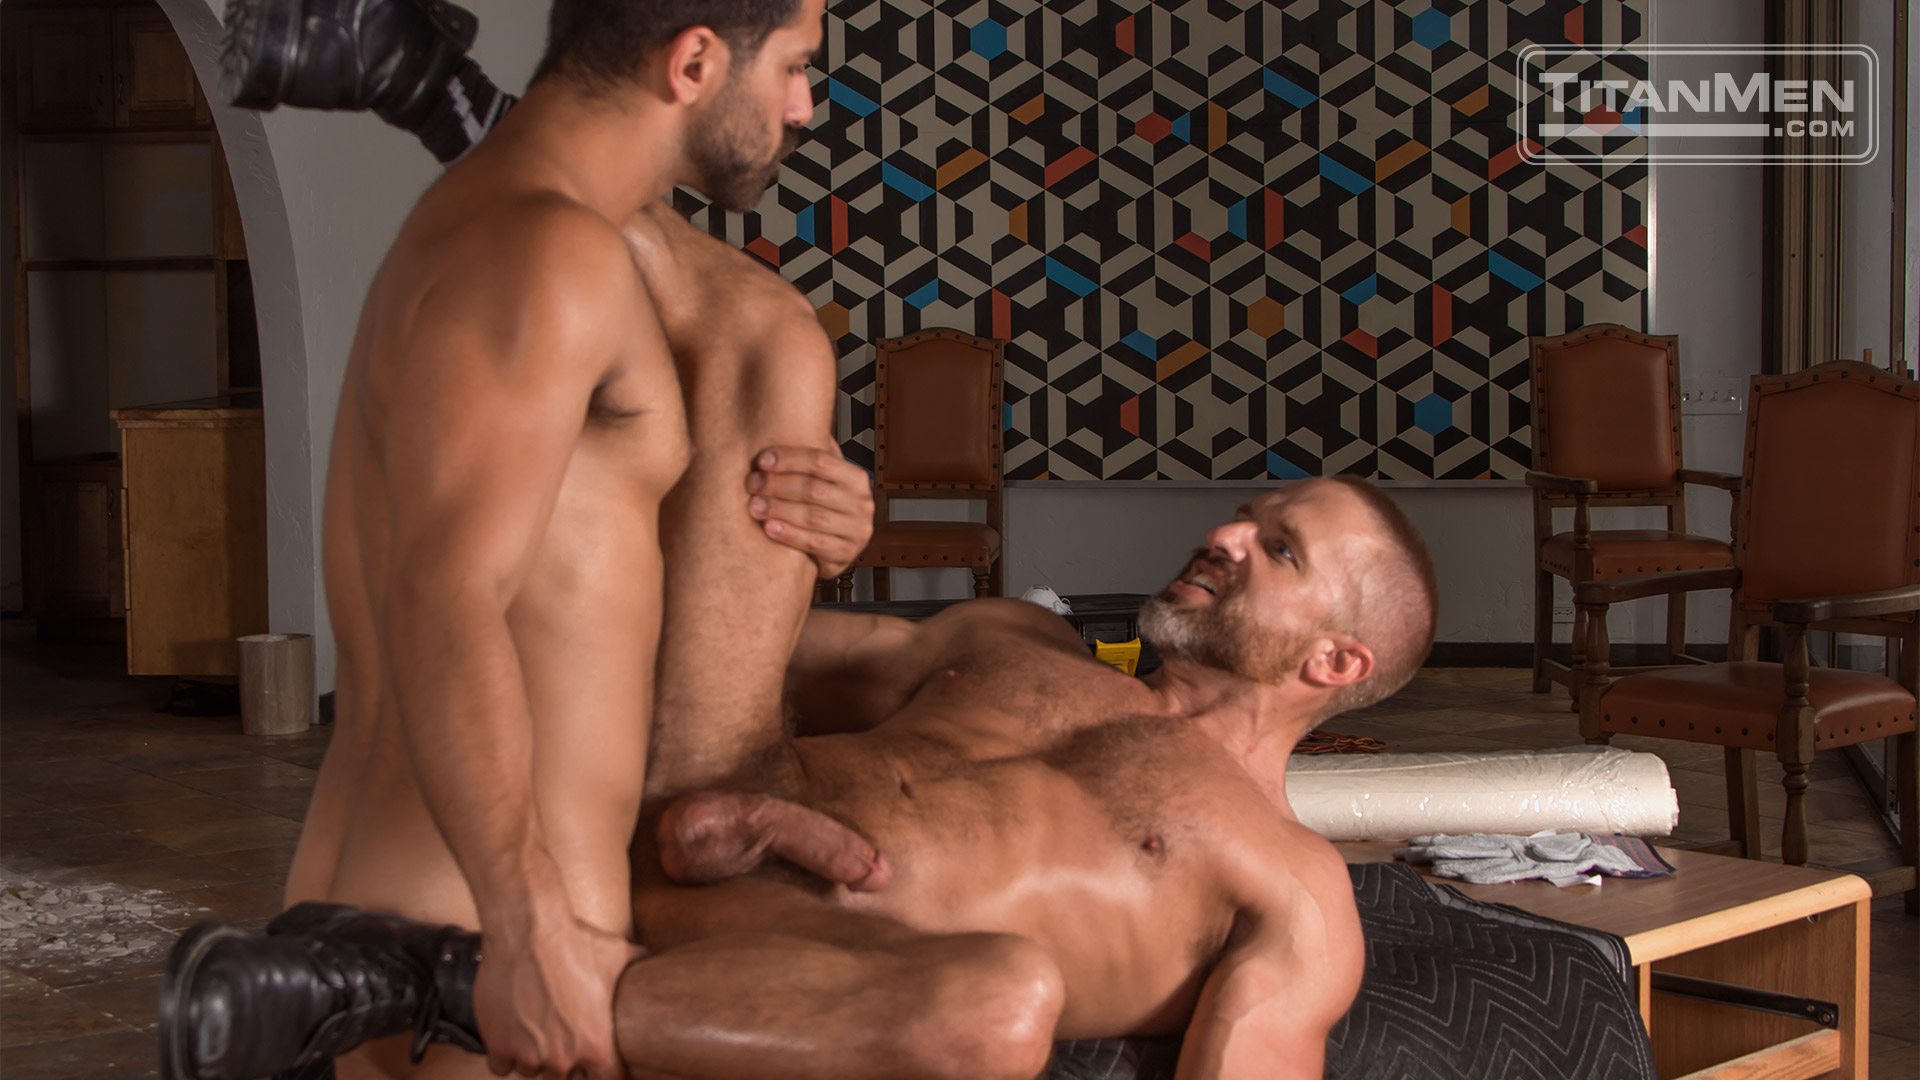 Adam Ramzi flip-fuck Dirk Caber gay hot daddy dude men porn Demolition